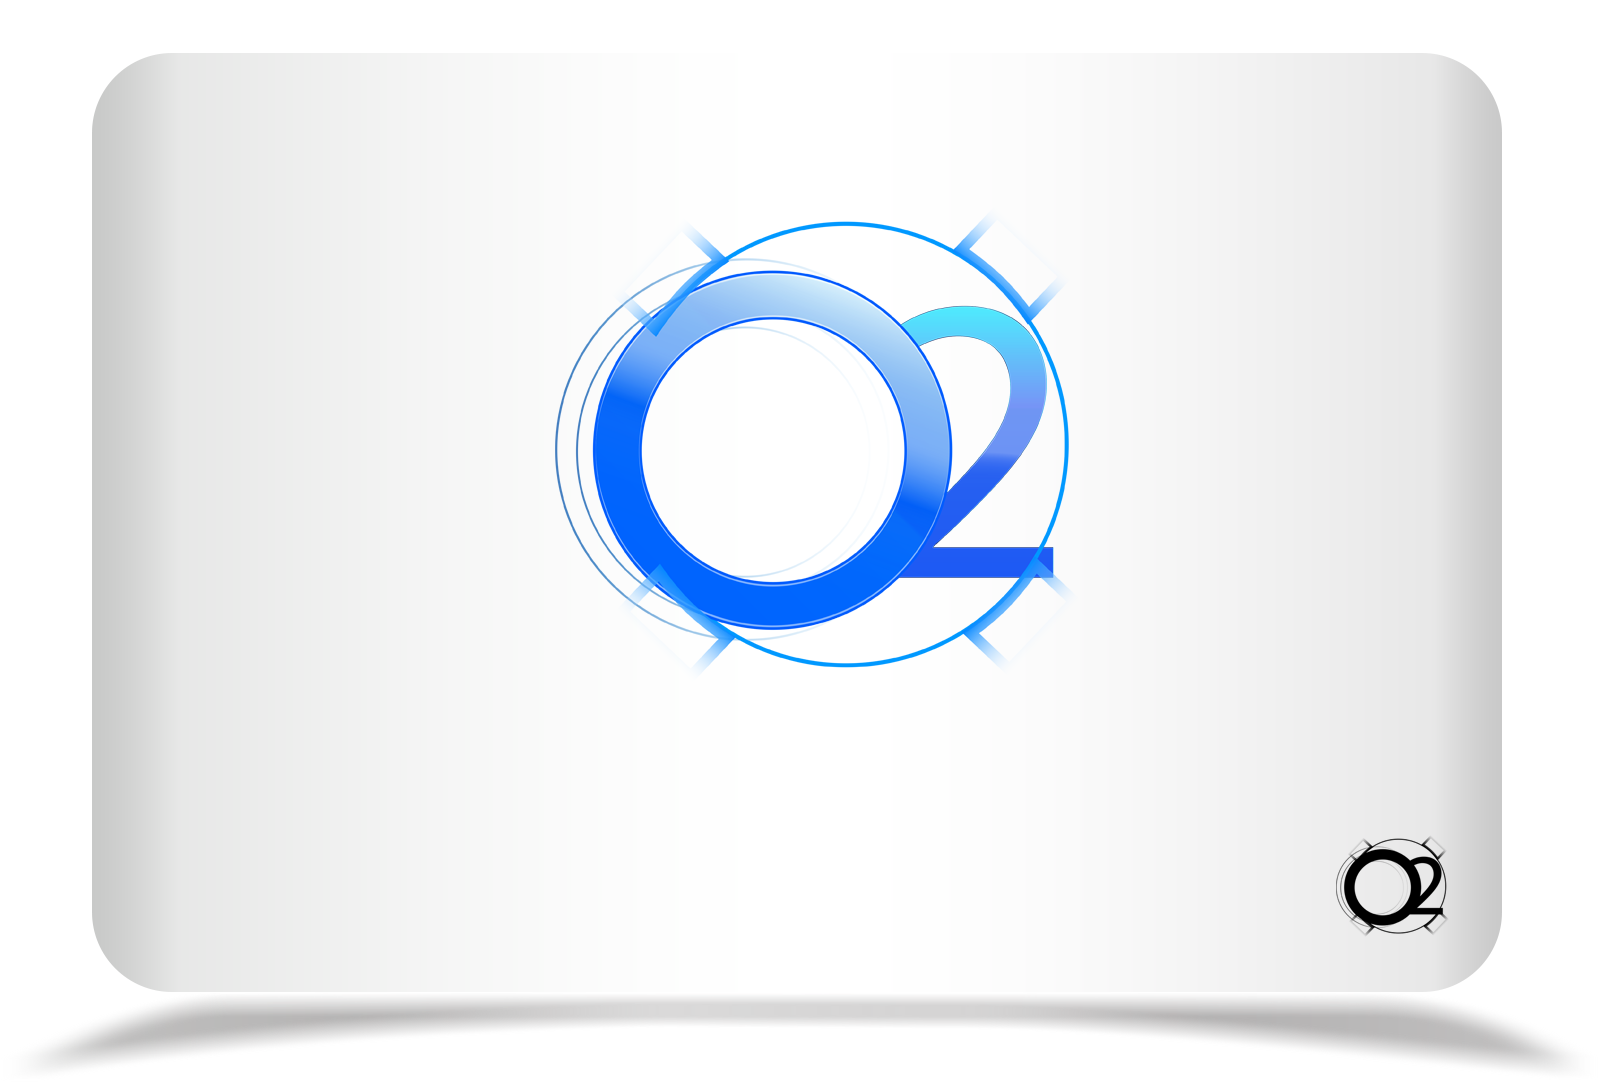 Logo Design by Rozsa Matyas - Entry No. 177 in the Logo Design Contest Artistic Logo Design for O2.